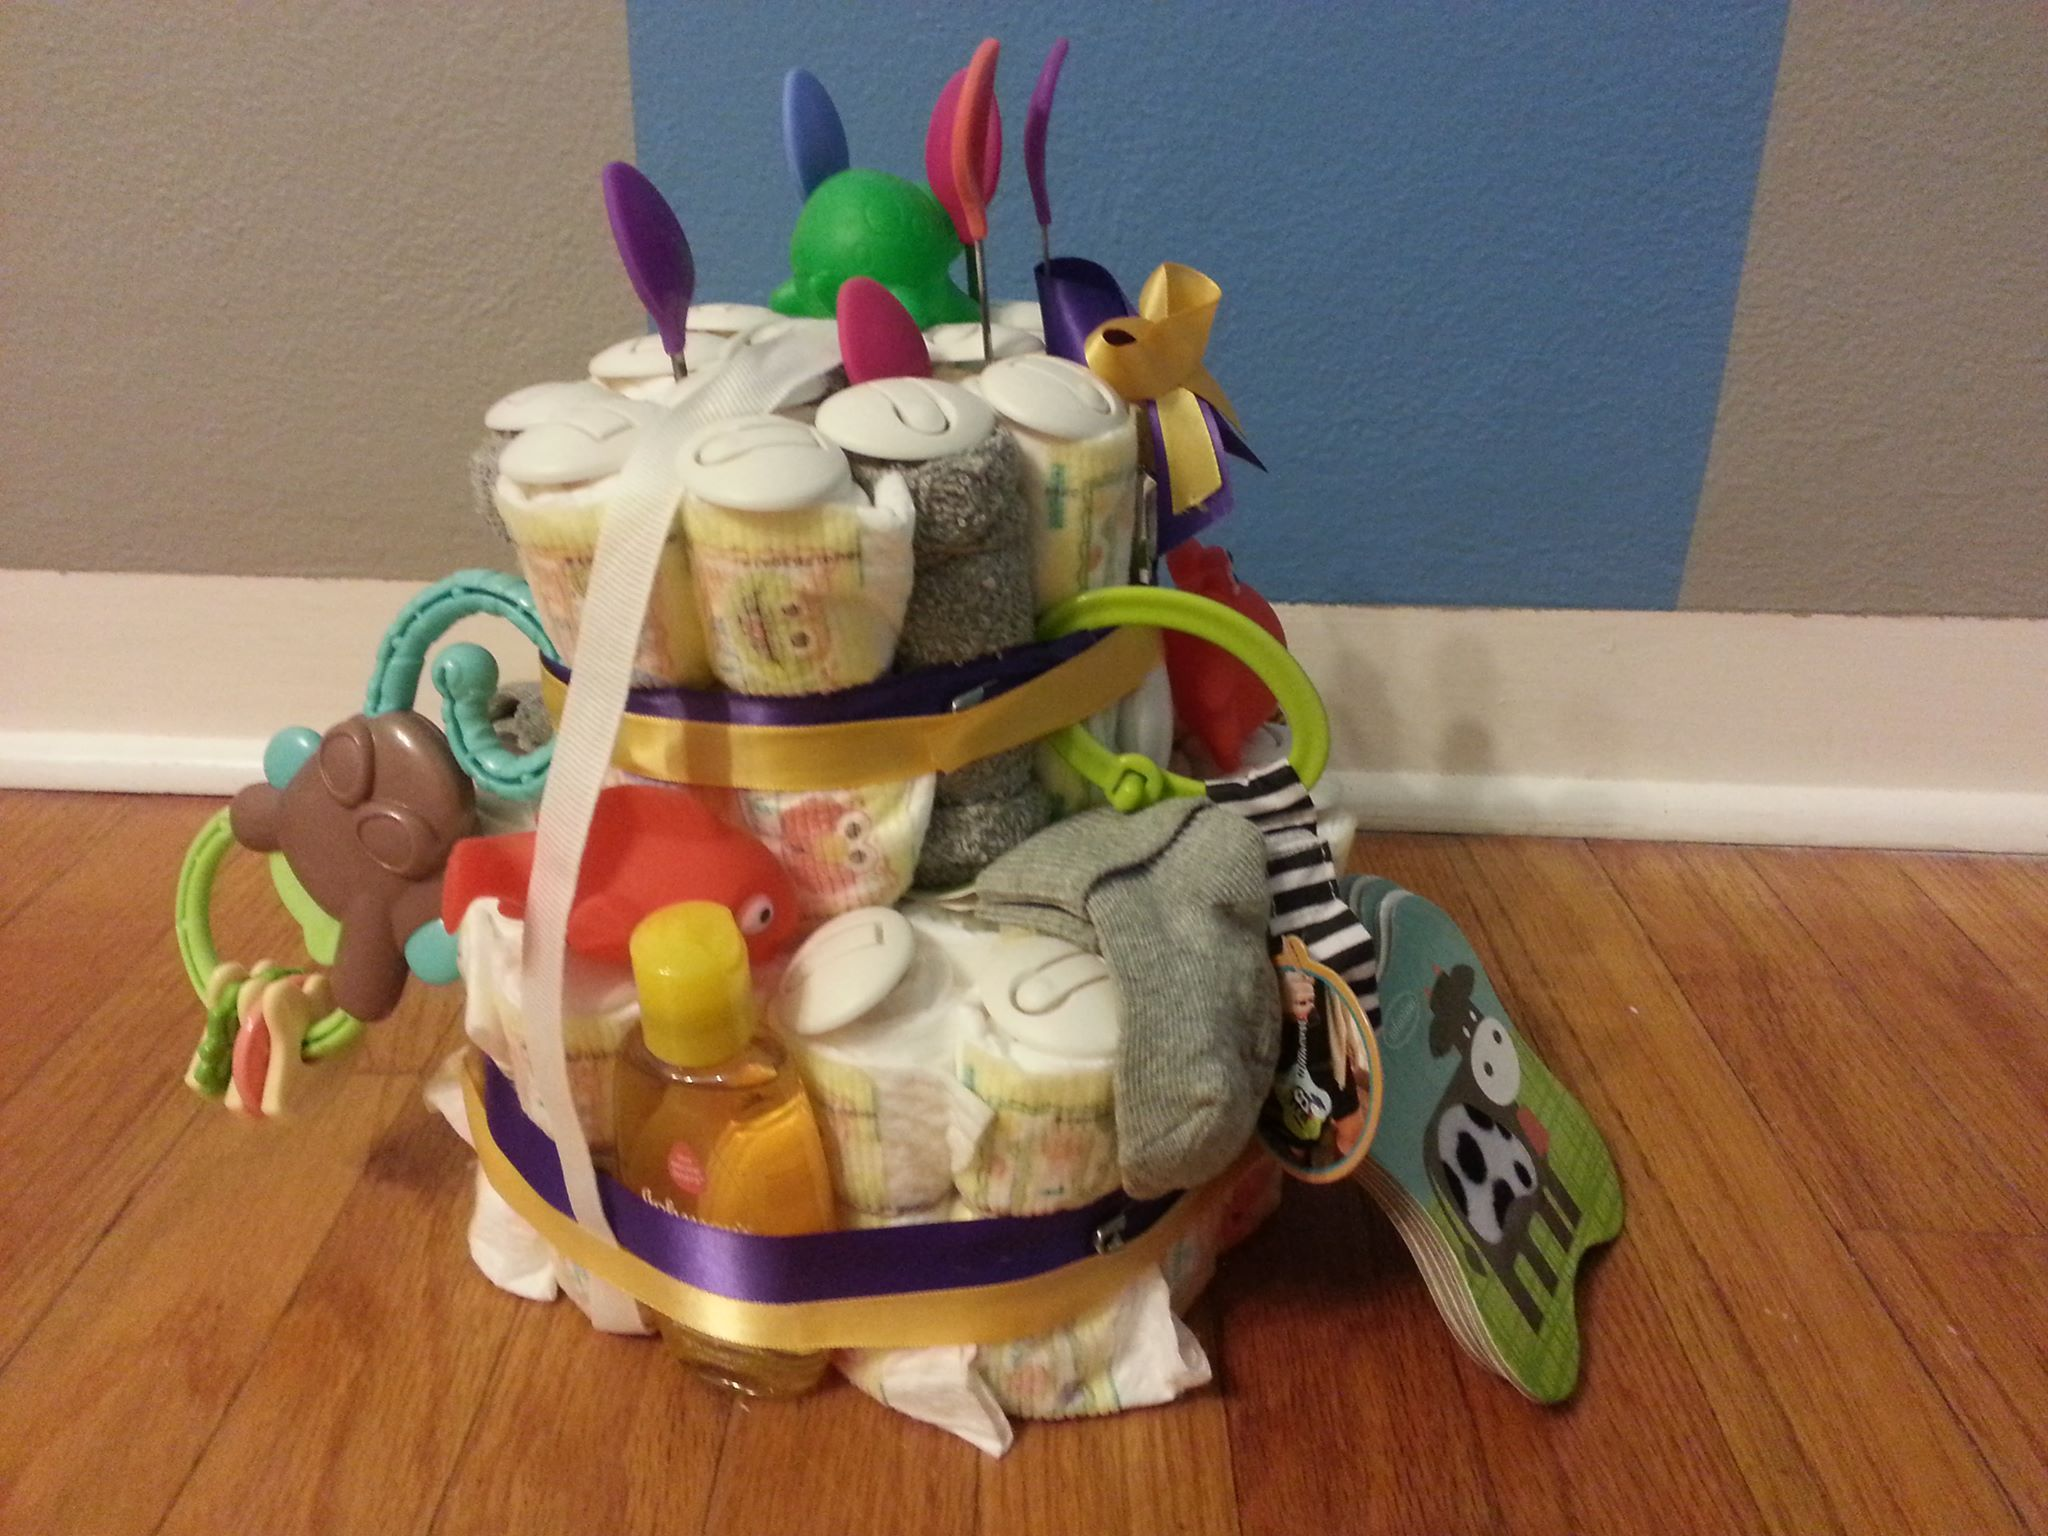 Another shot of the UNI diaper cake.